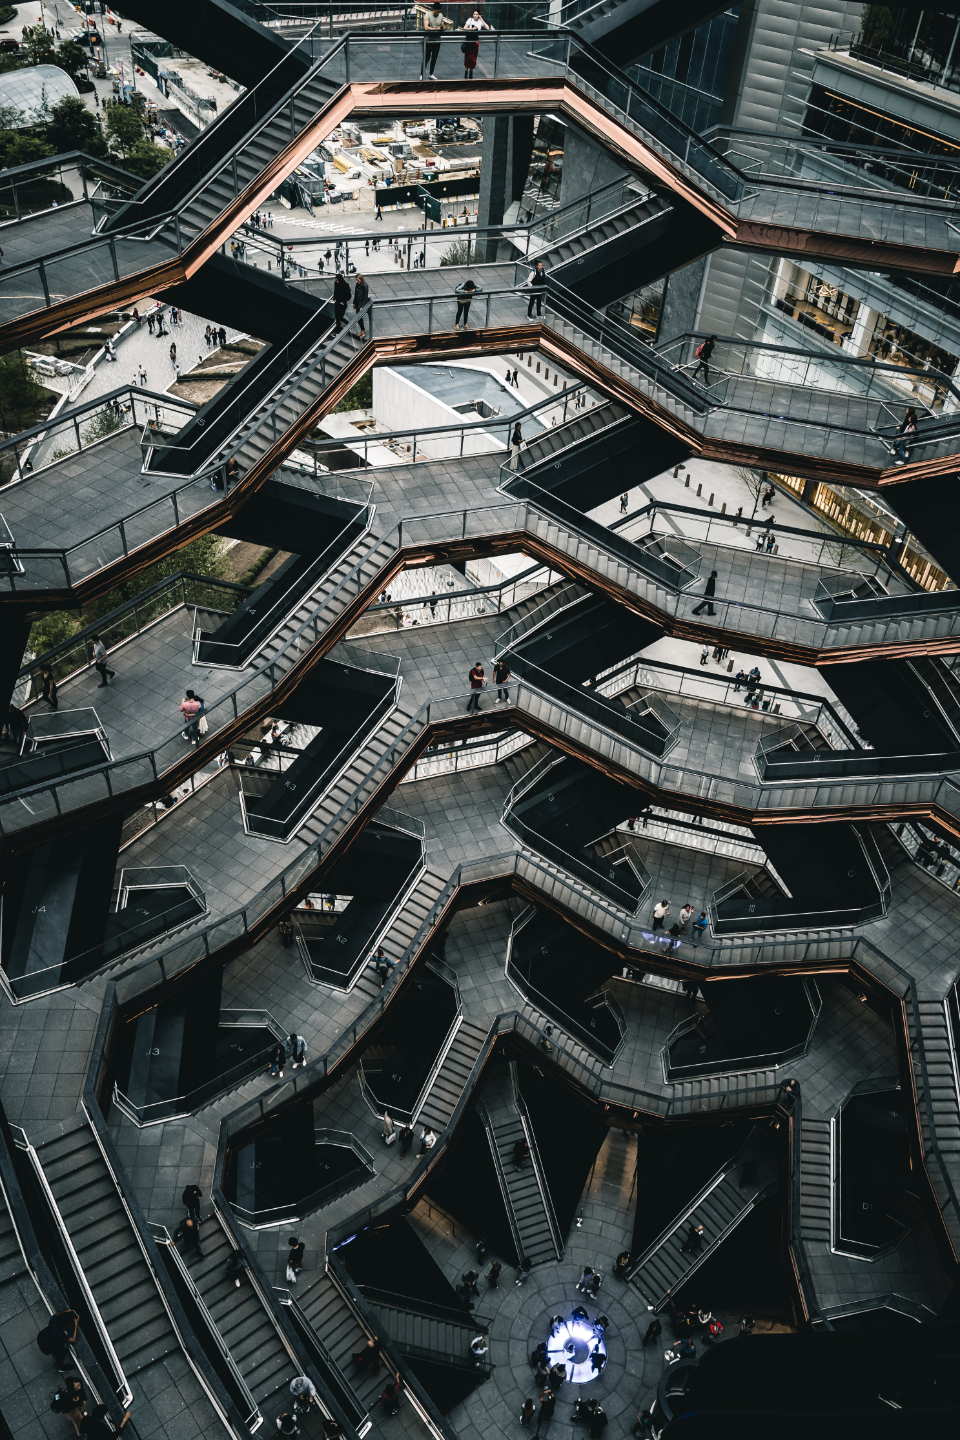 stairs interior abstract building city tall steps modern design architecture symmetry people view stairway